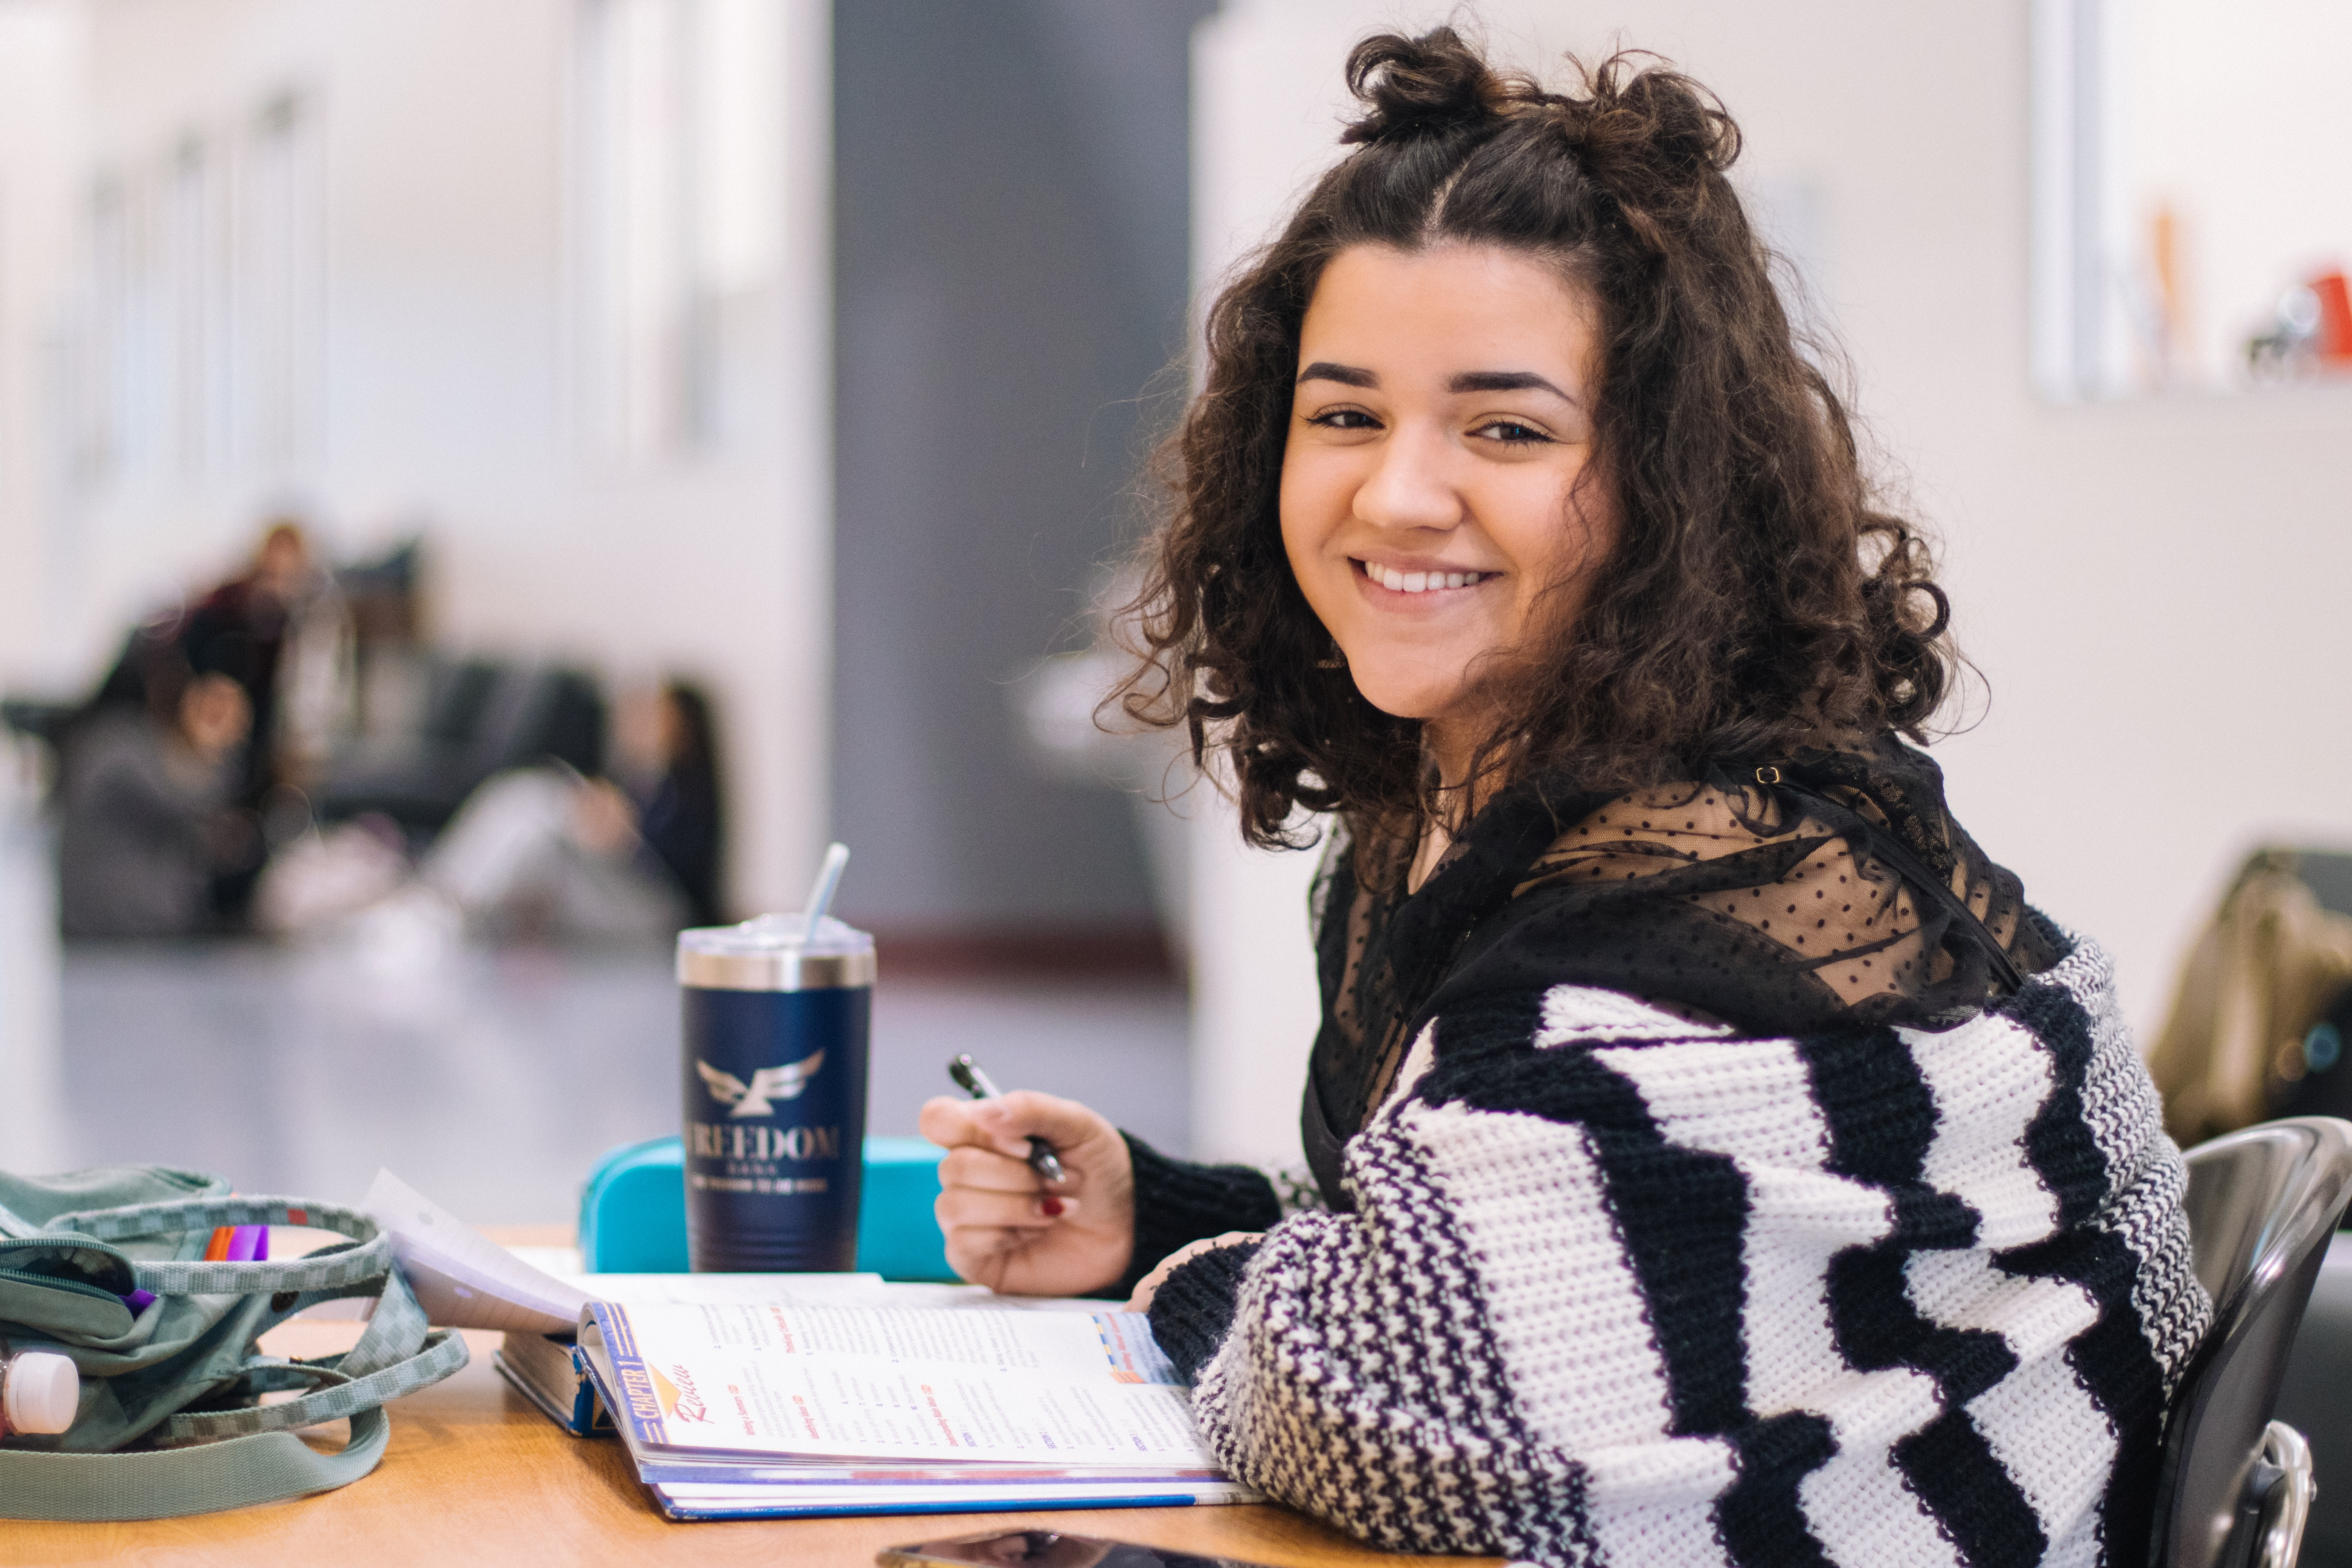 Girl wearing a black and white stripey jumper smiles at camera while studying, book open in front of her